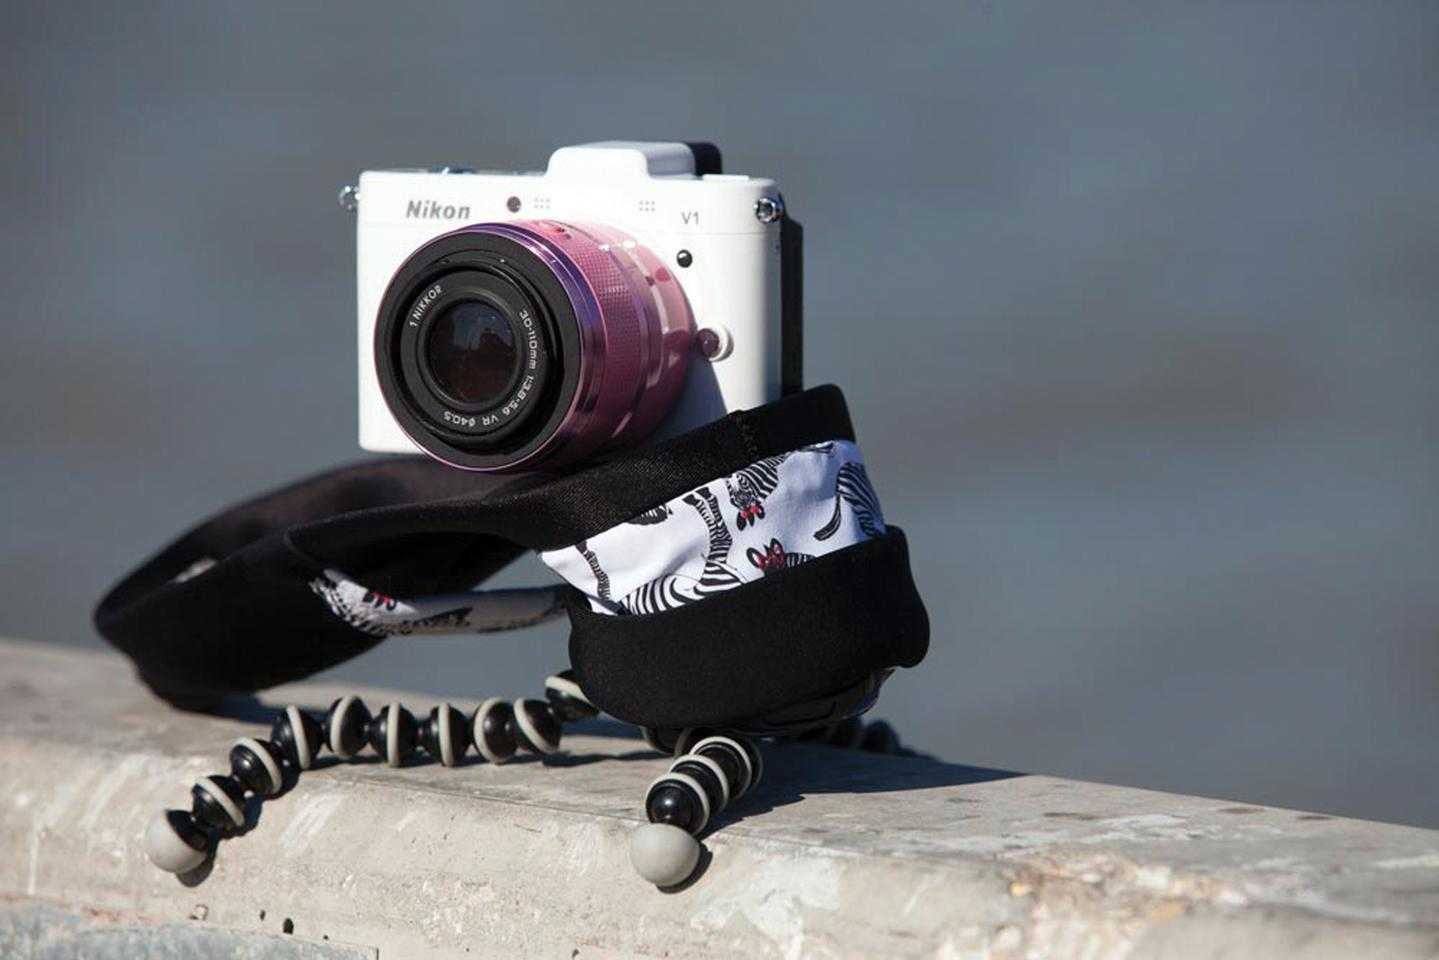 The Miggo camera straps connect using a smart adapter tripod thread, meaning cameras can still be mounted on a tripod